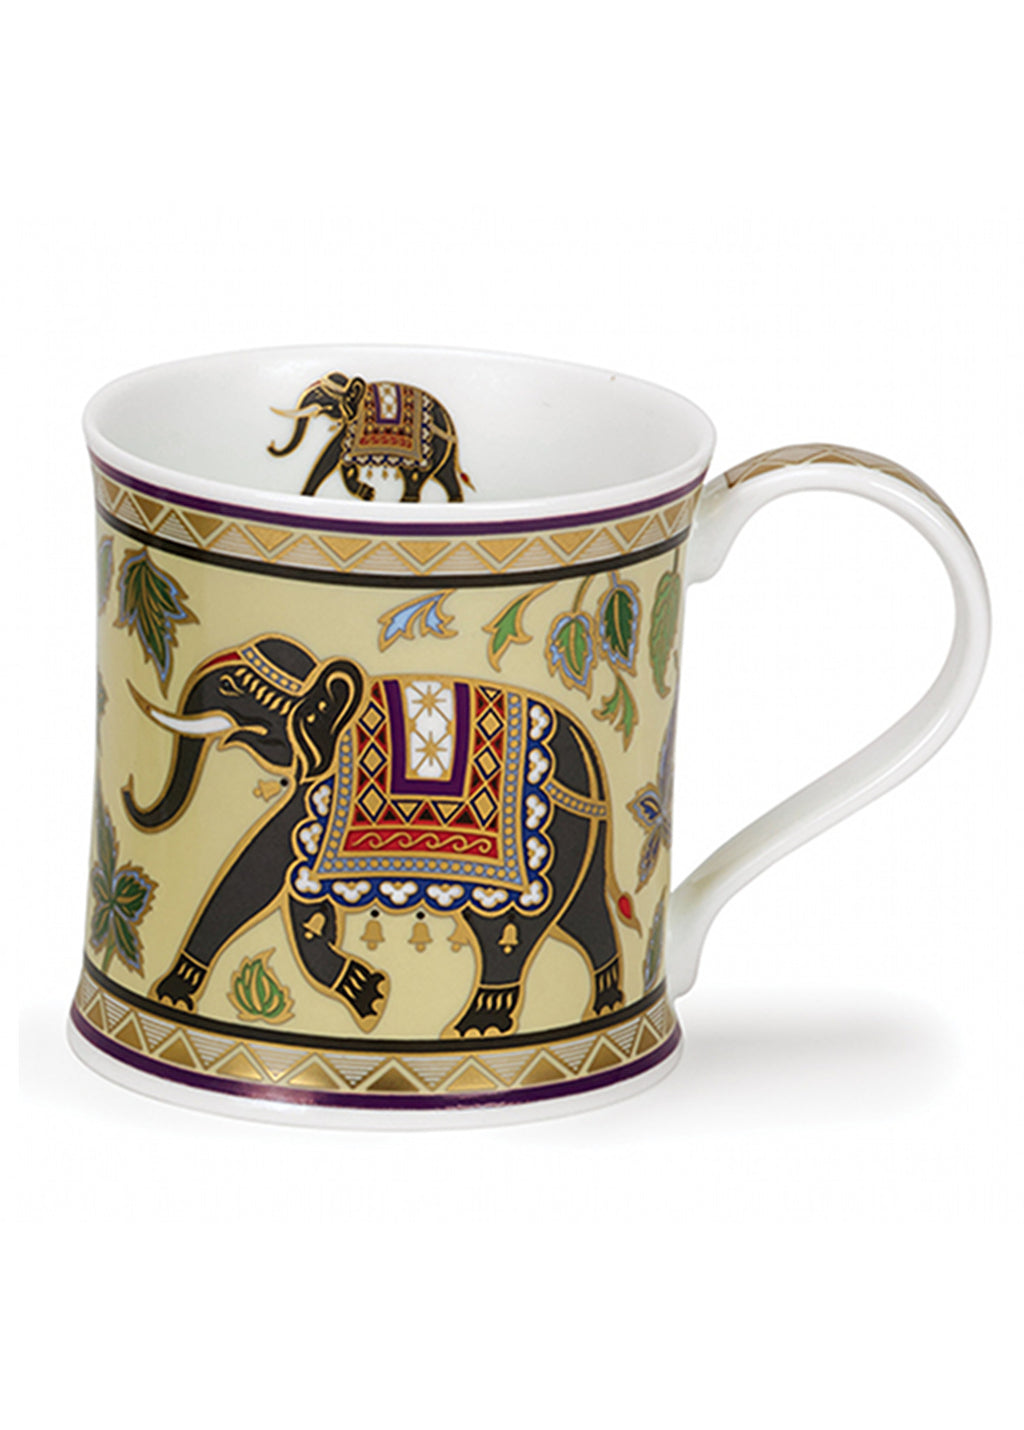 Buy Dunoon Mugs in Canada Wessex Arabia Elephant Fine Bone China Made in England Tea Coffee Red Scarf Equestrian